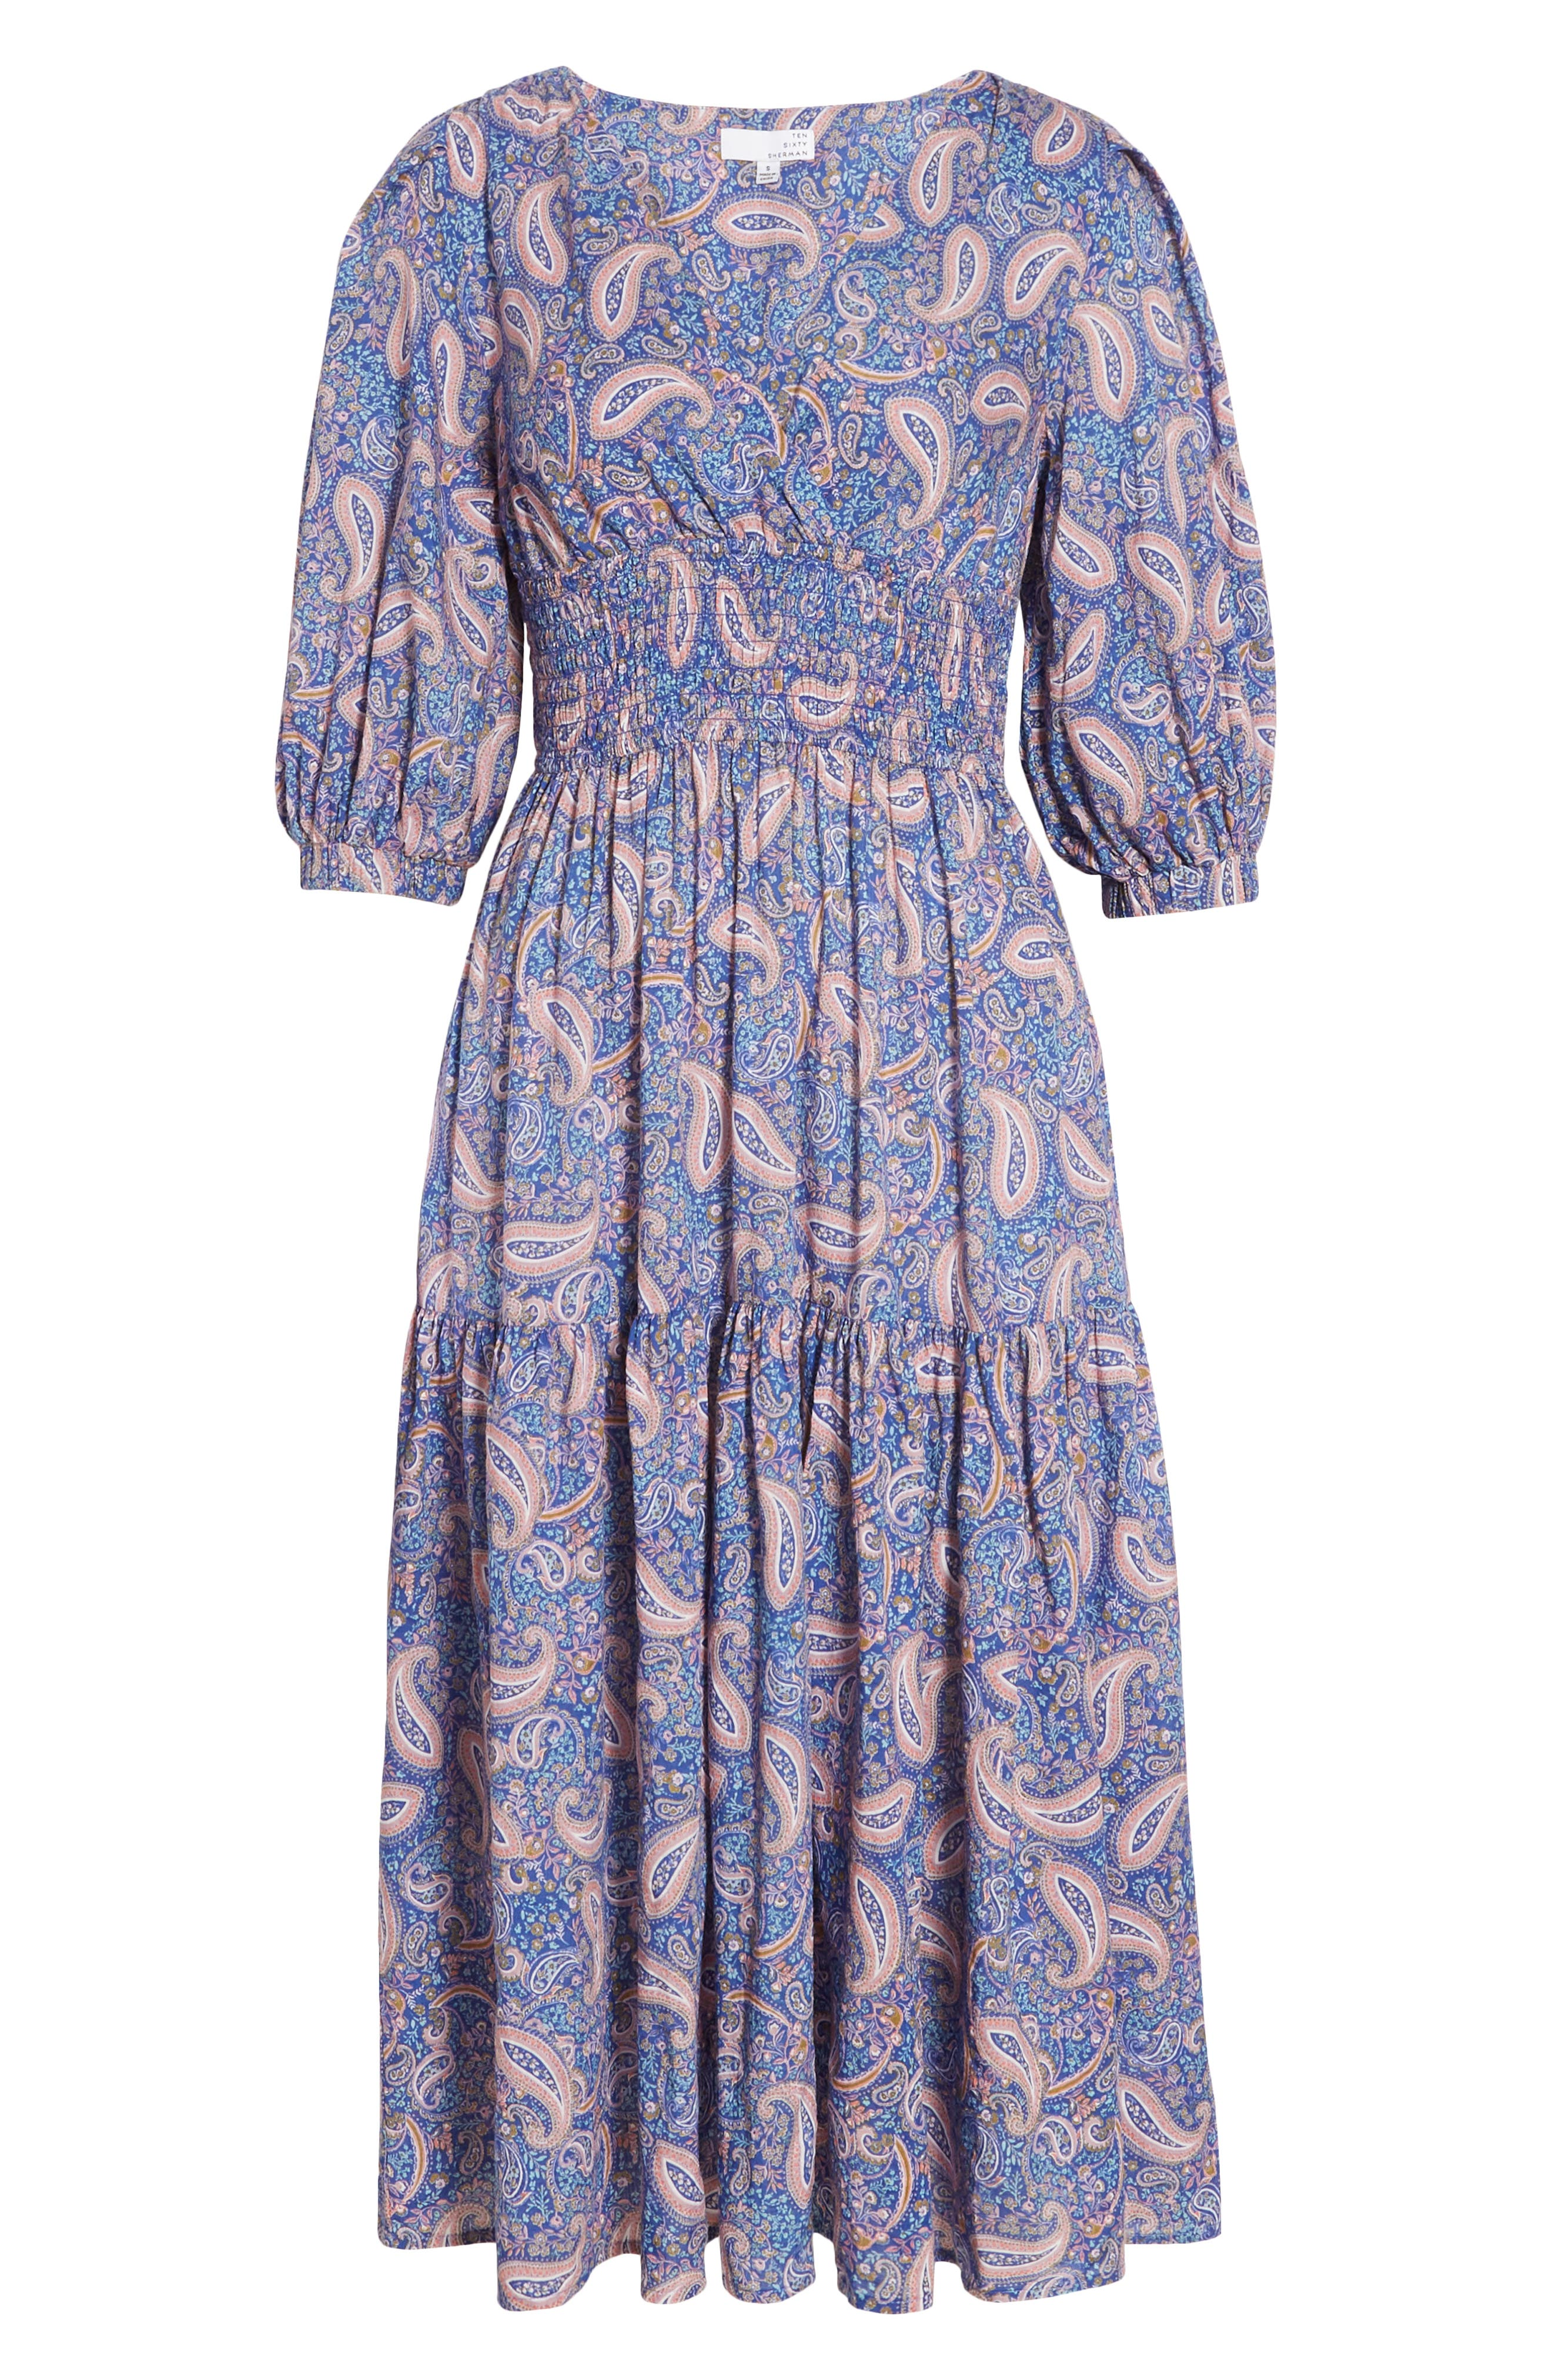 70s Outfits – 70s Style Ideas for Women Womens Ten Sixty Sherman Paisley Print Ruffle Dress $49.00 AT vintagedancer.com